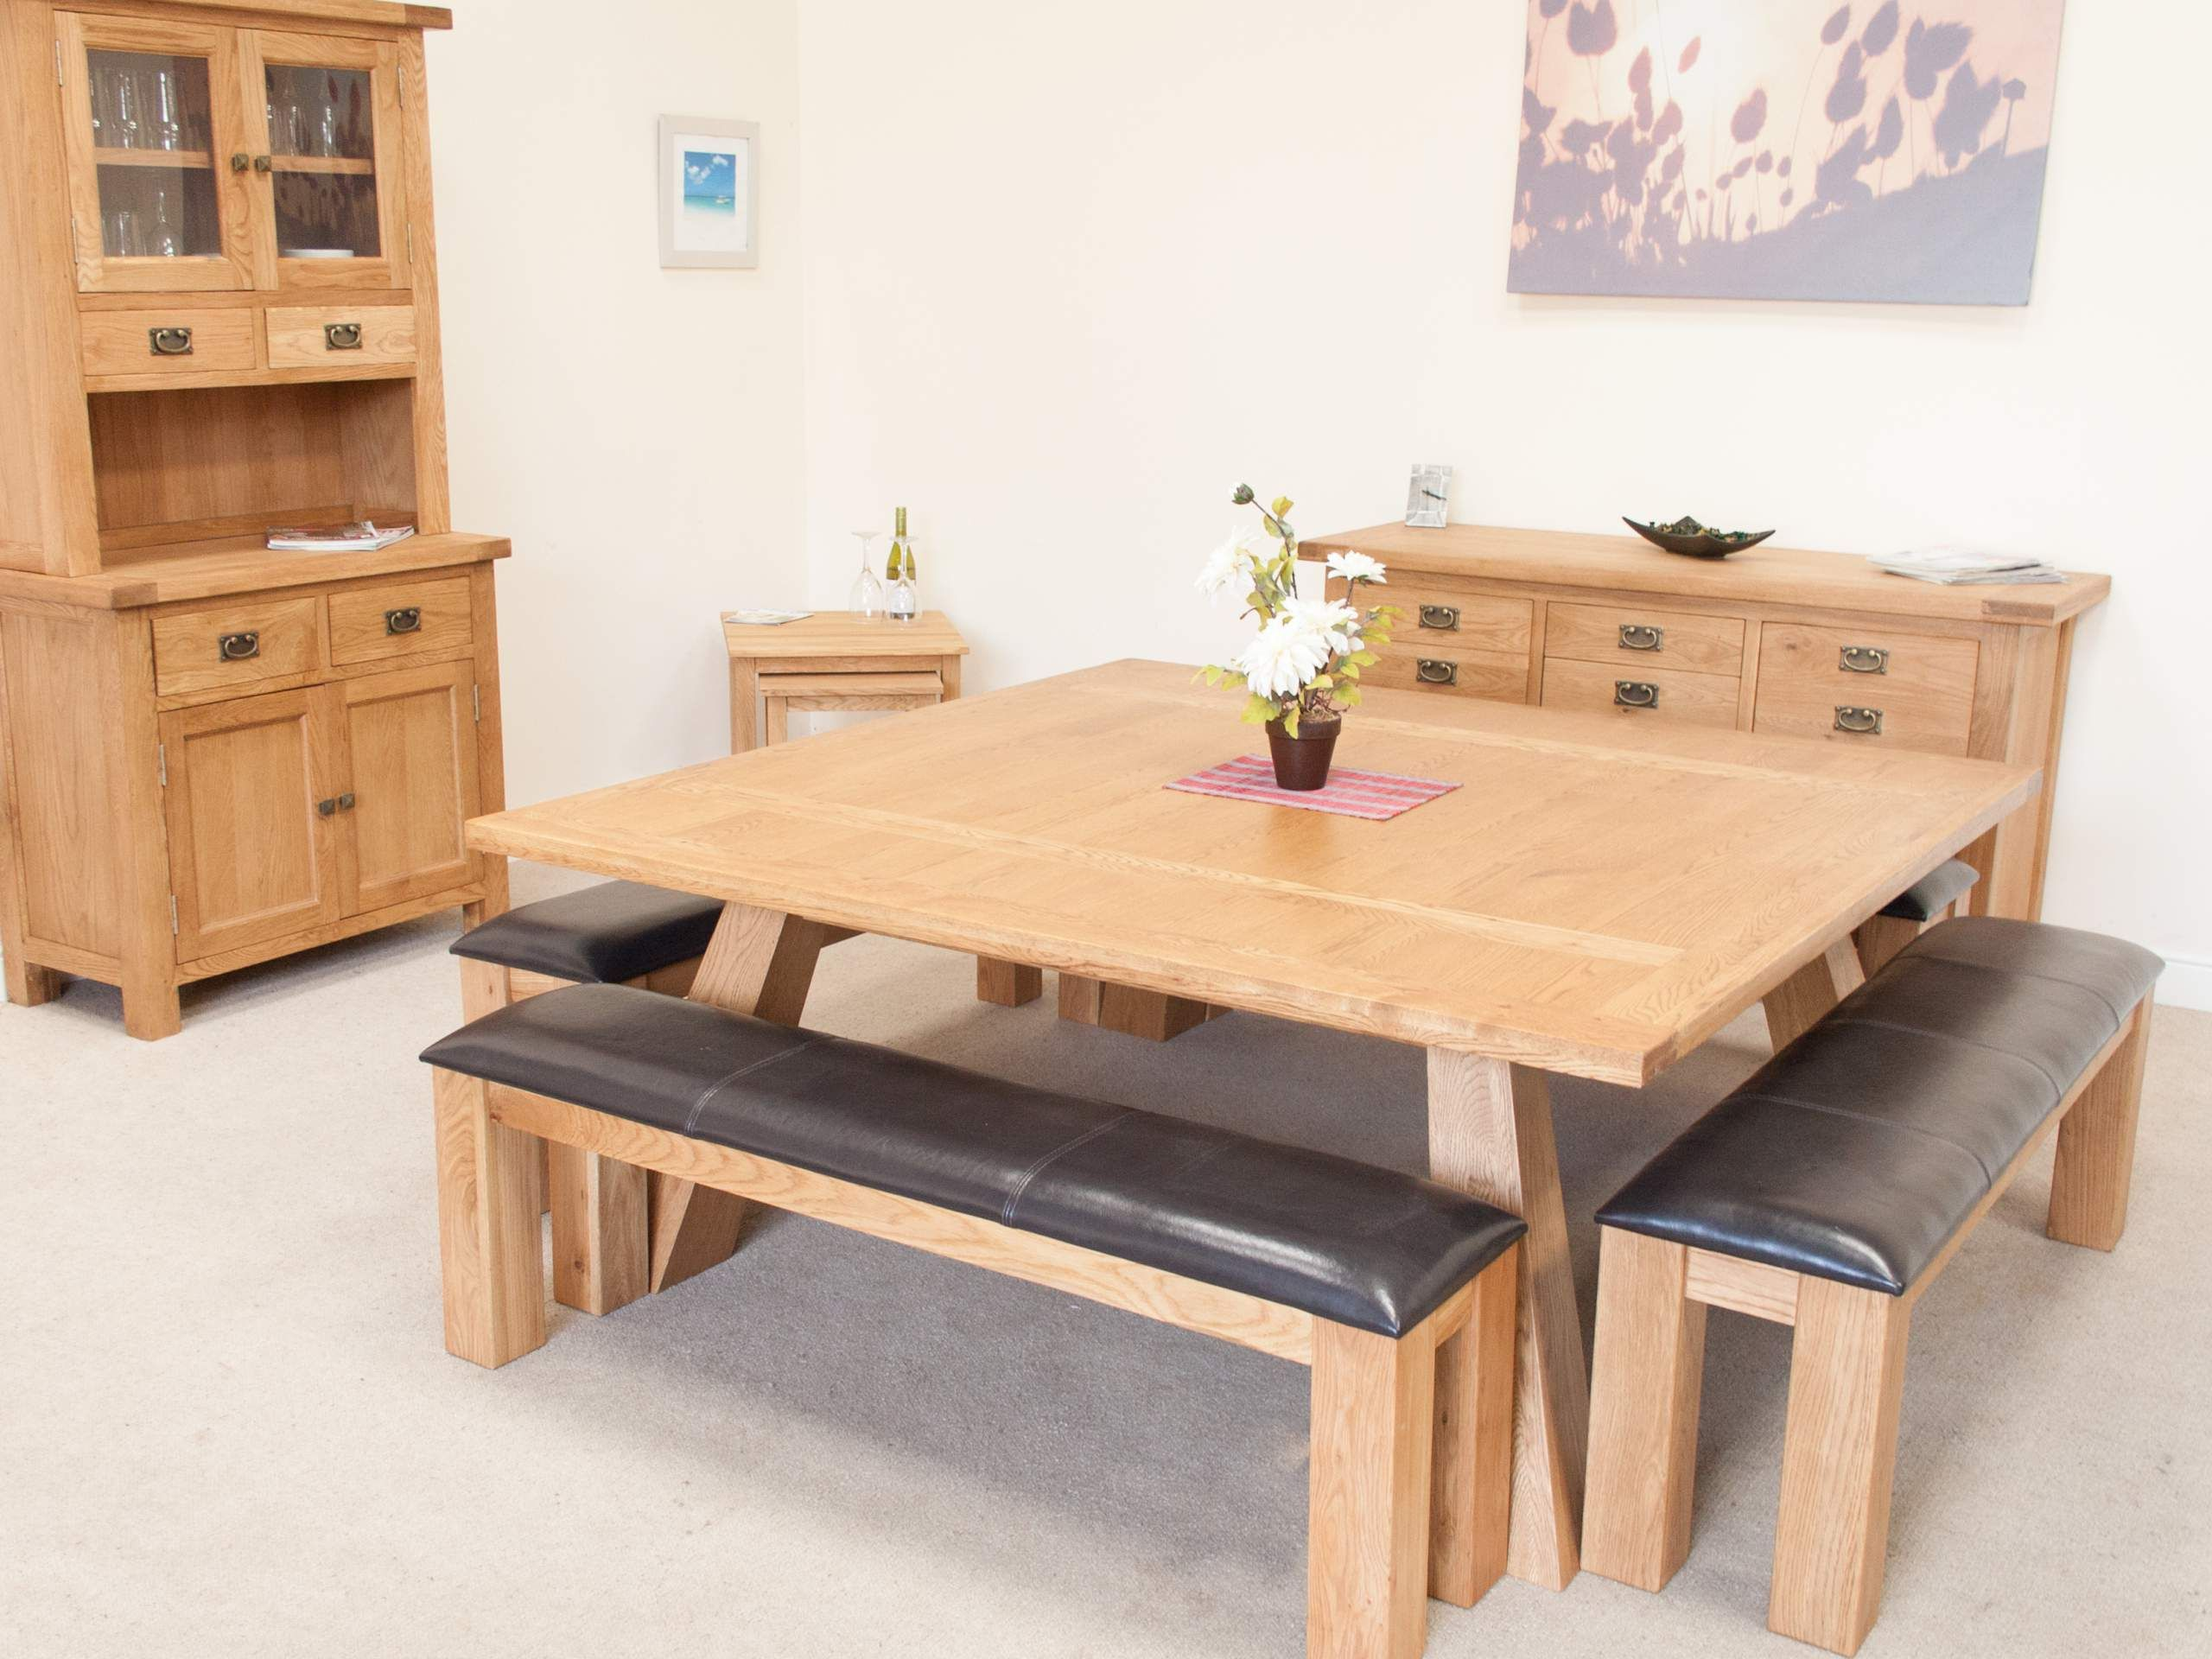 Large 180cm 8 To 10 Seater Square Oak Dining Table